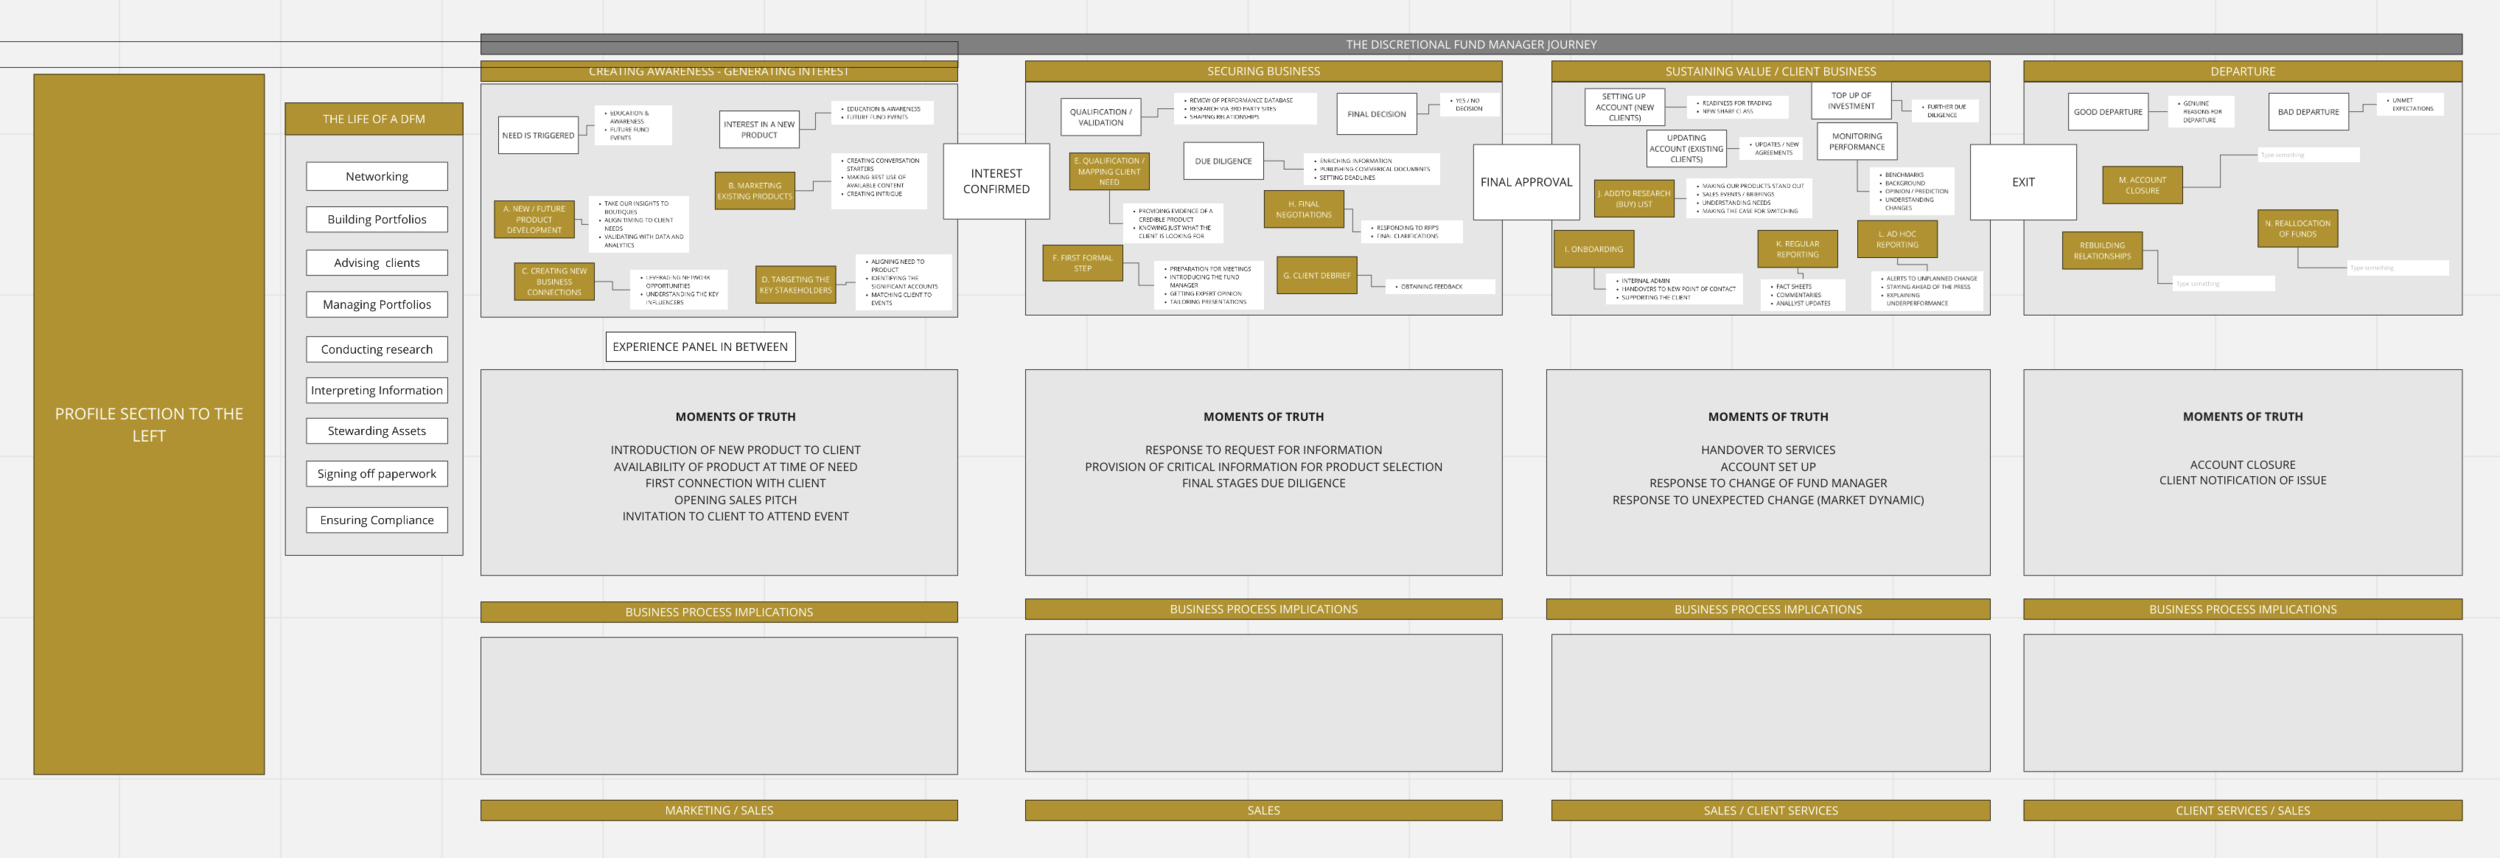 INTERNAL DESIGN STRUCTURE - THIS WILL SHORTLY BE REPLACED WITH THE PRESENTATION VERSION